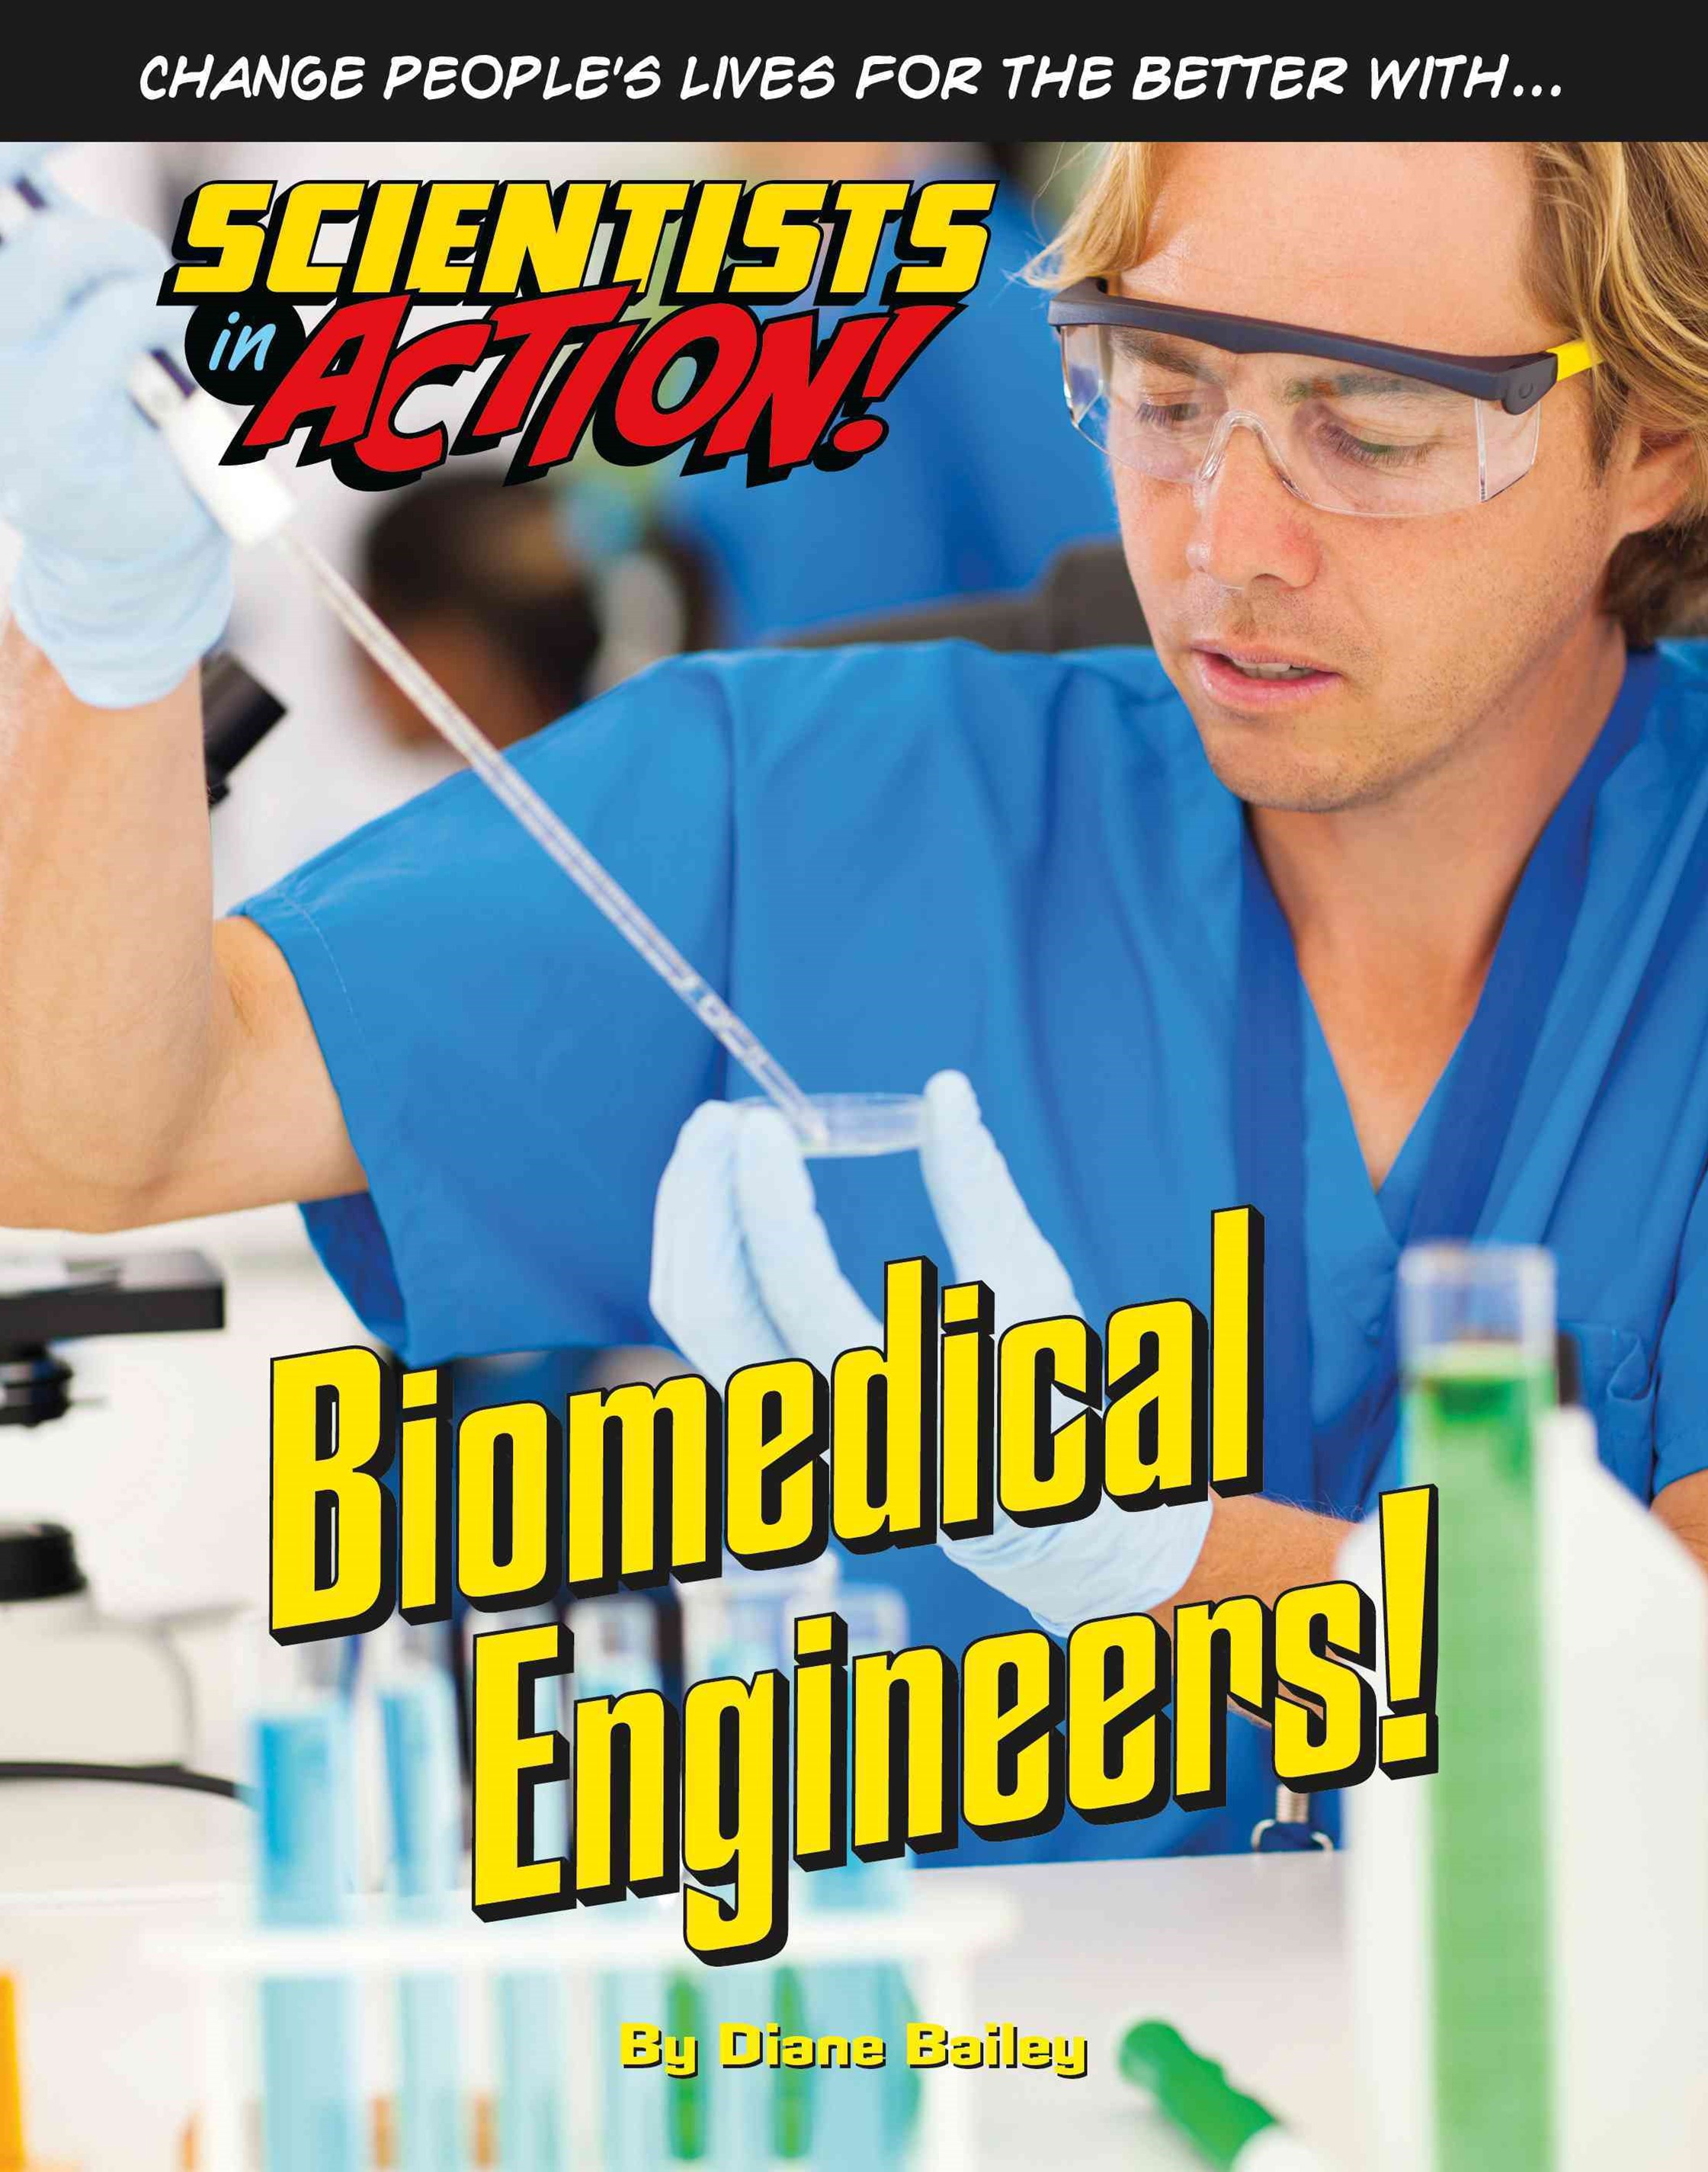 Biomedical Engineers!